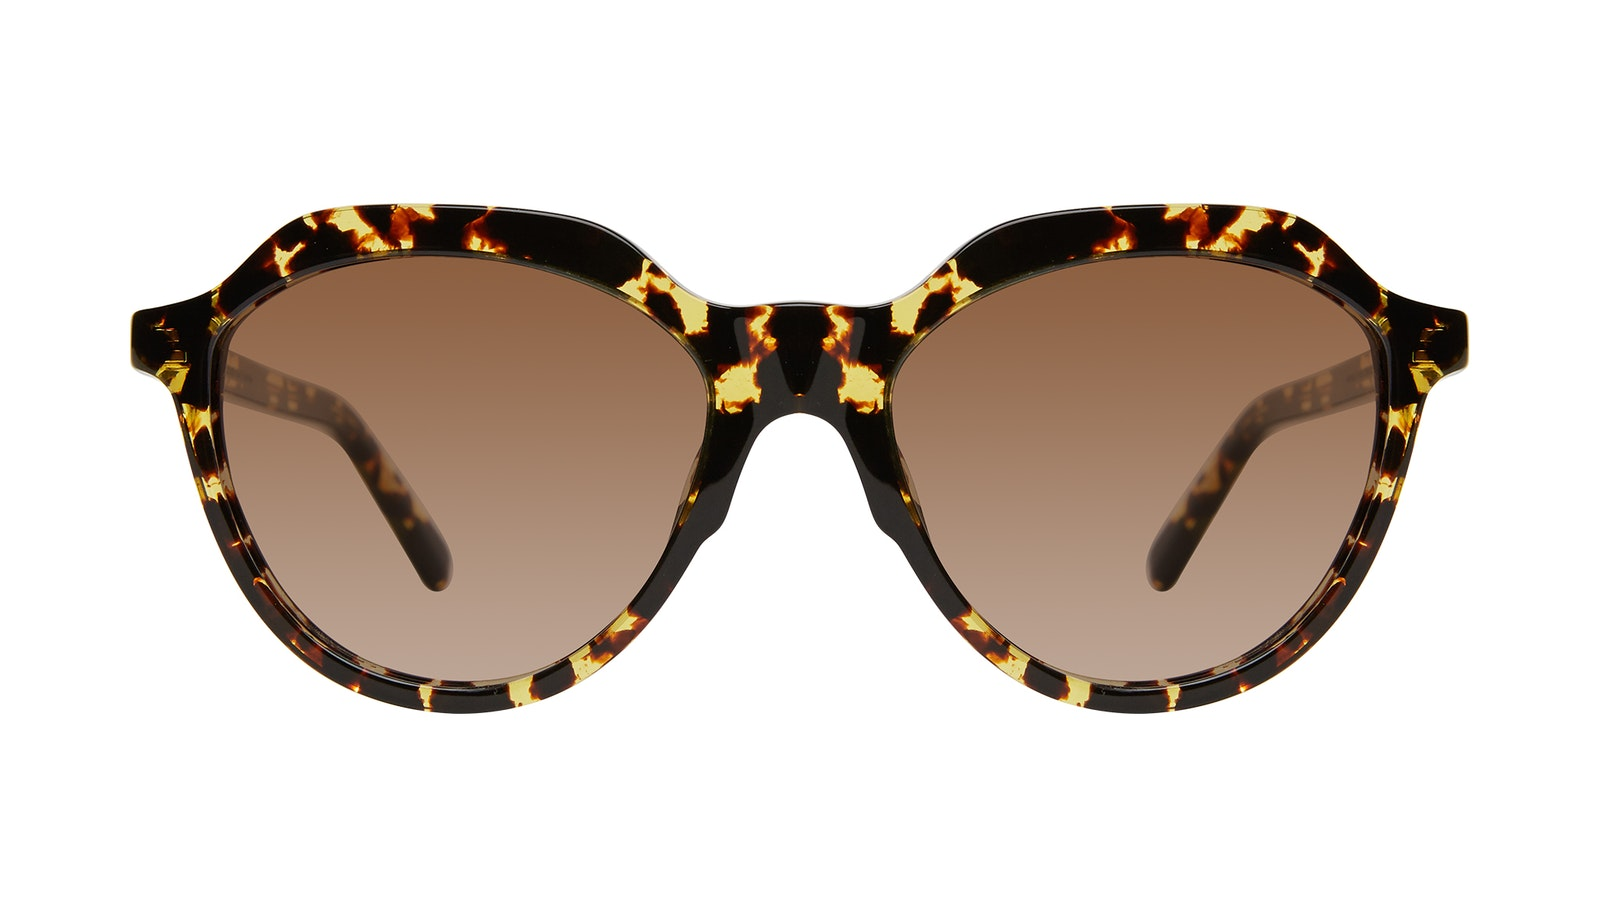 Affordable Fashion Glasses Round Sunglasses Women Jetsetter Gold Flake